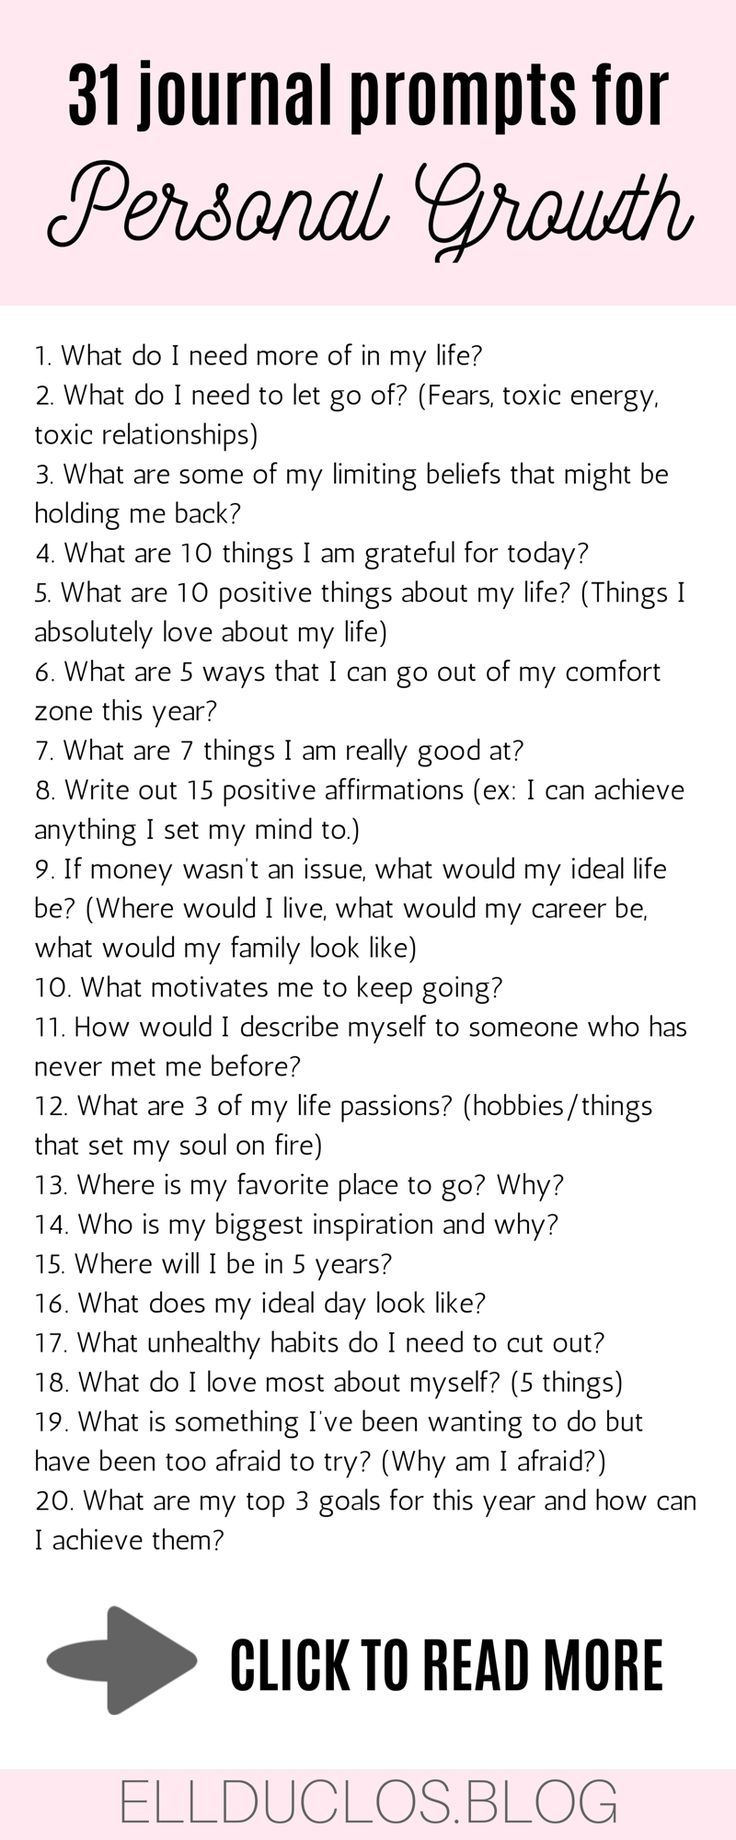 31 journal prompts for personal growth and self discovery